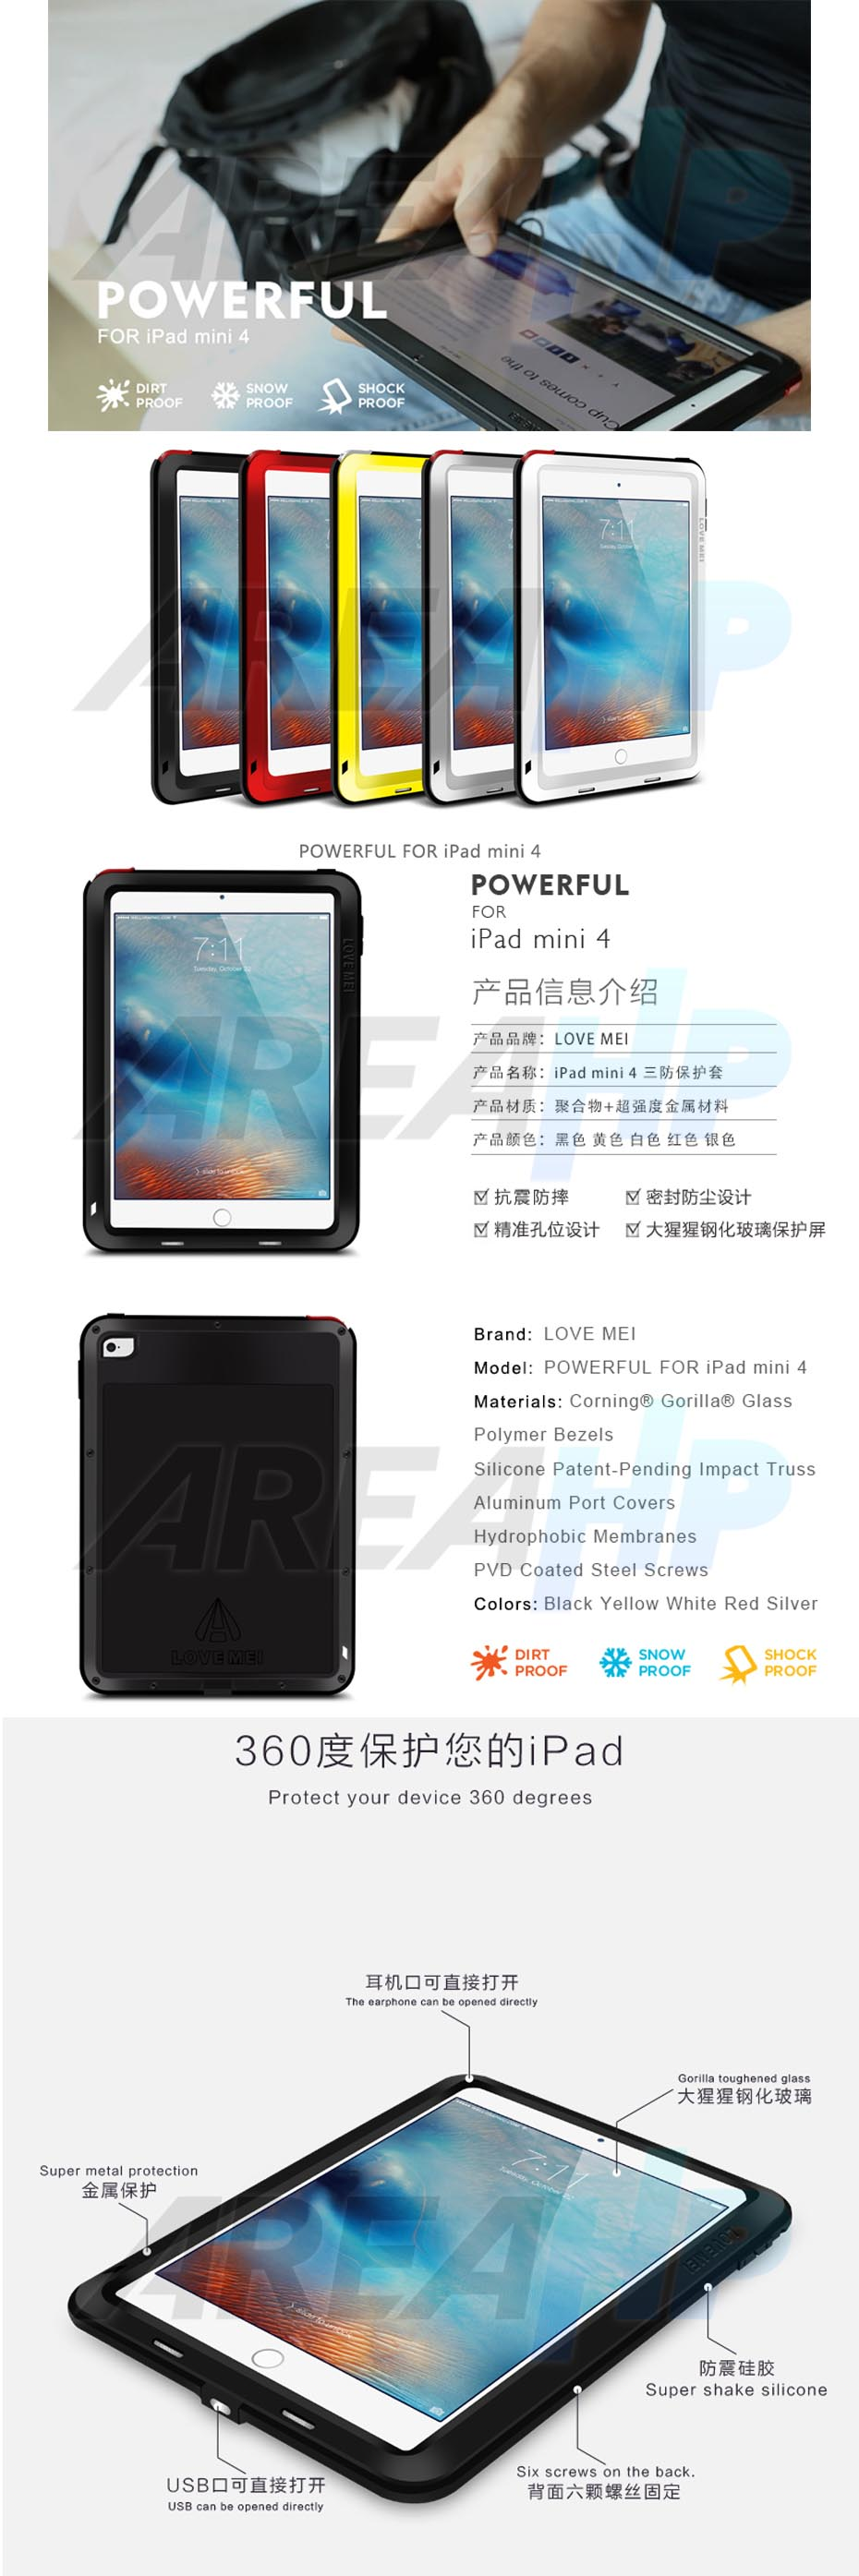 Love Mei Powerful Case for iPad Mini 4 Overview